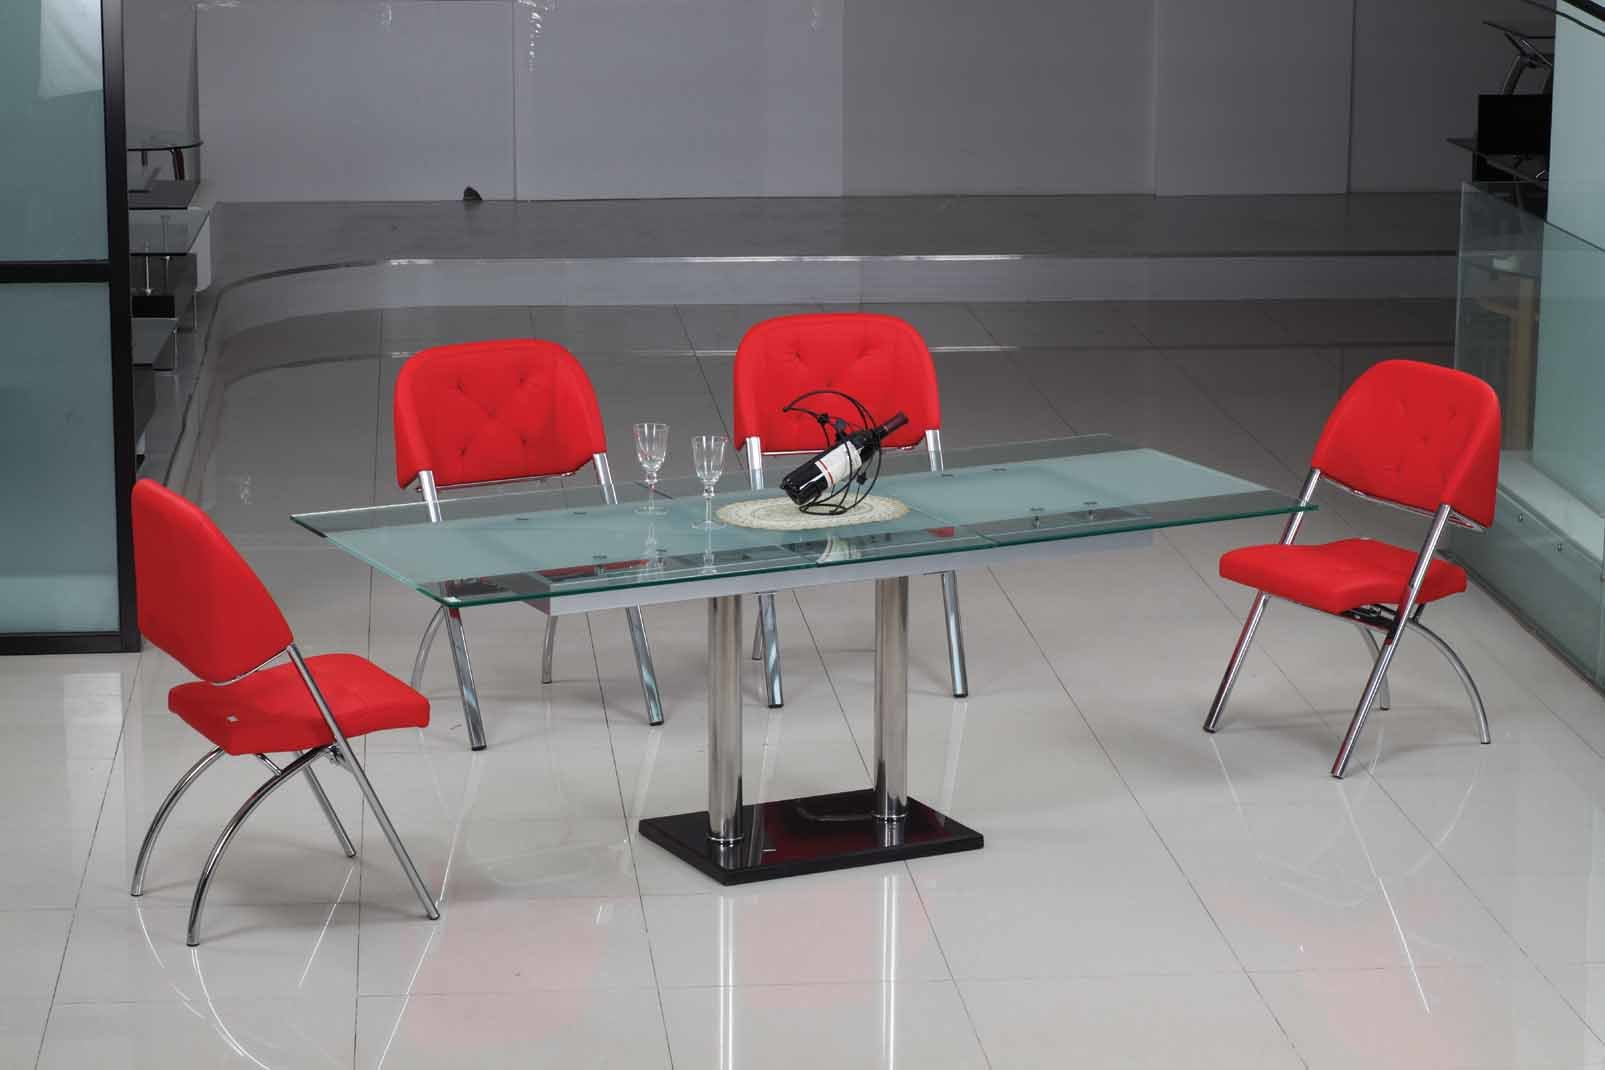 China fancy glass table d201 c207 china functional for Fancy glass dining table